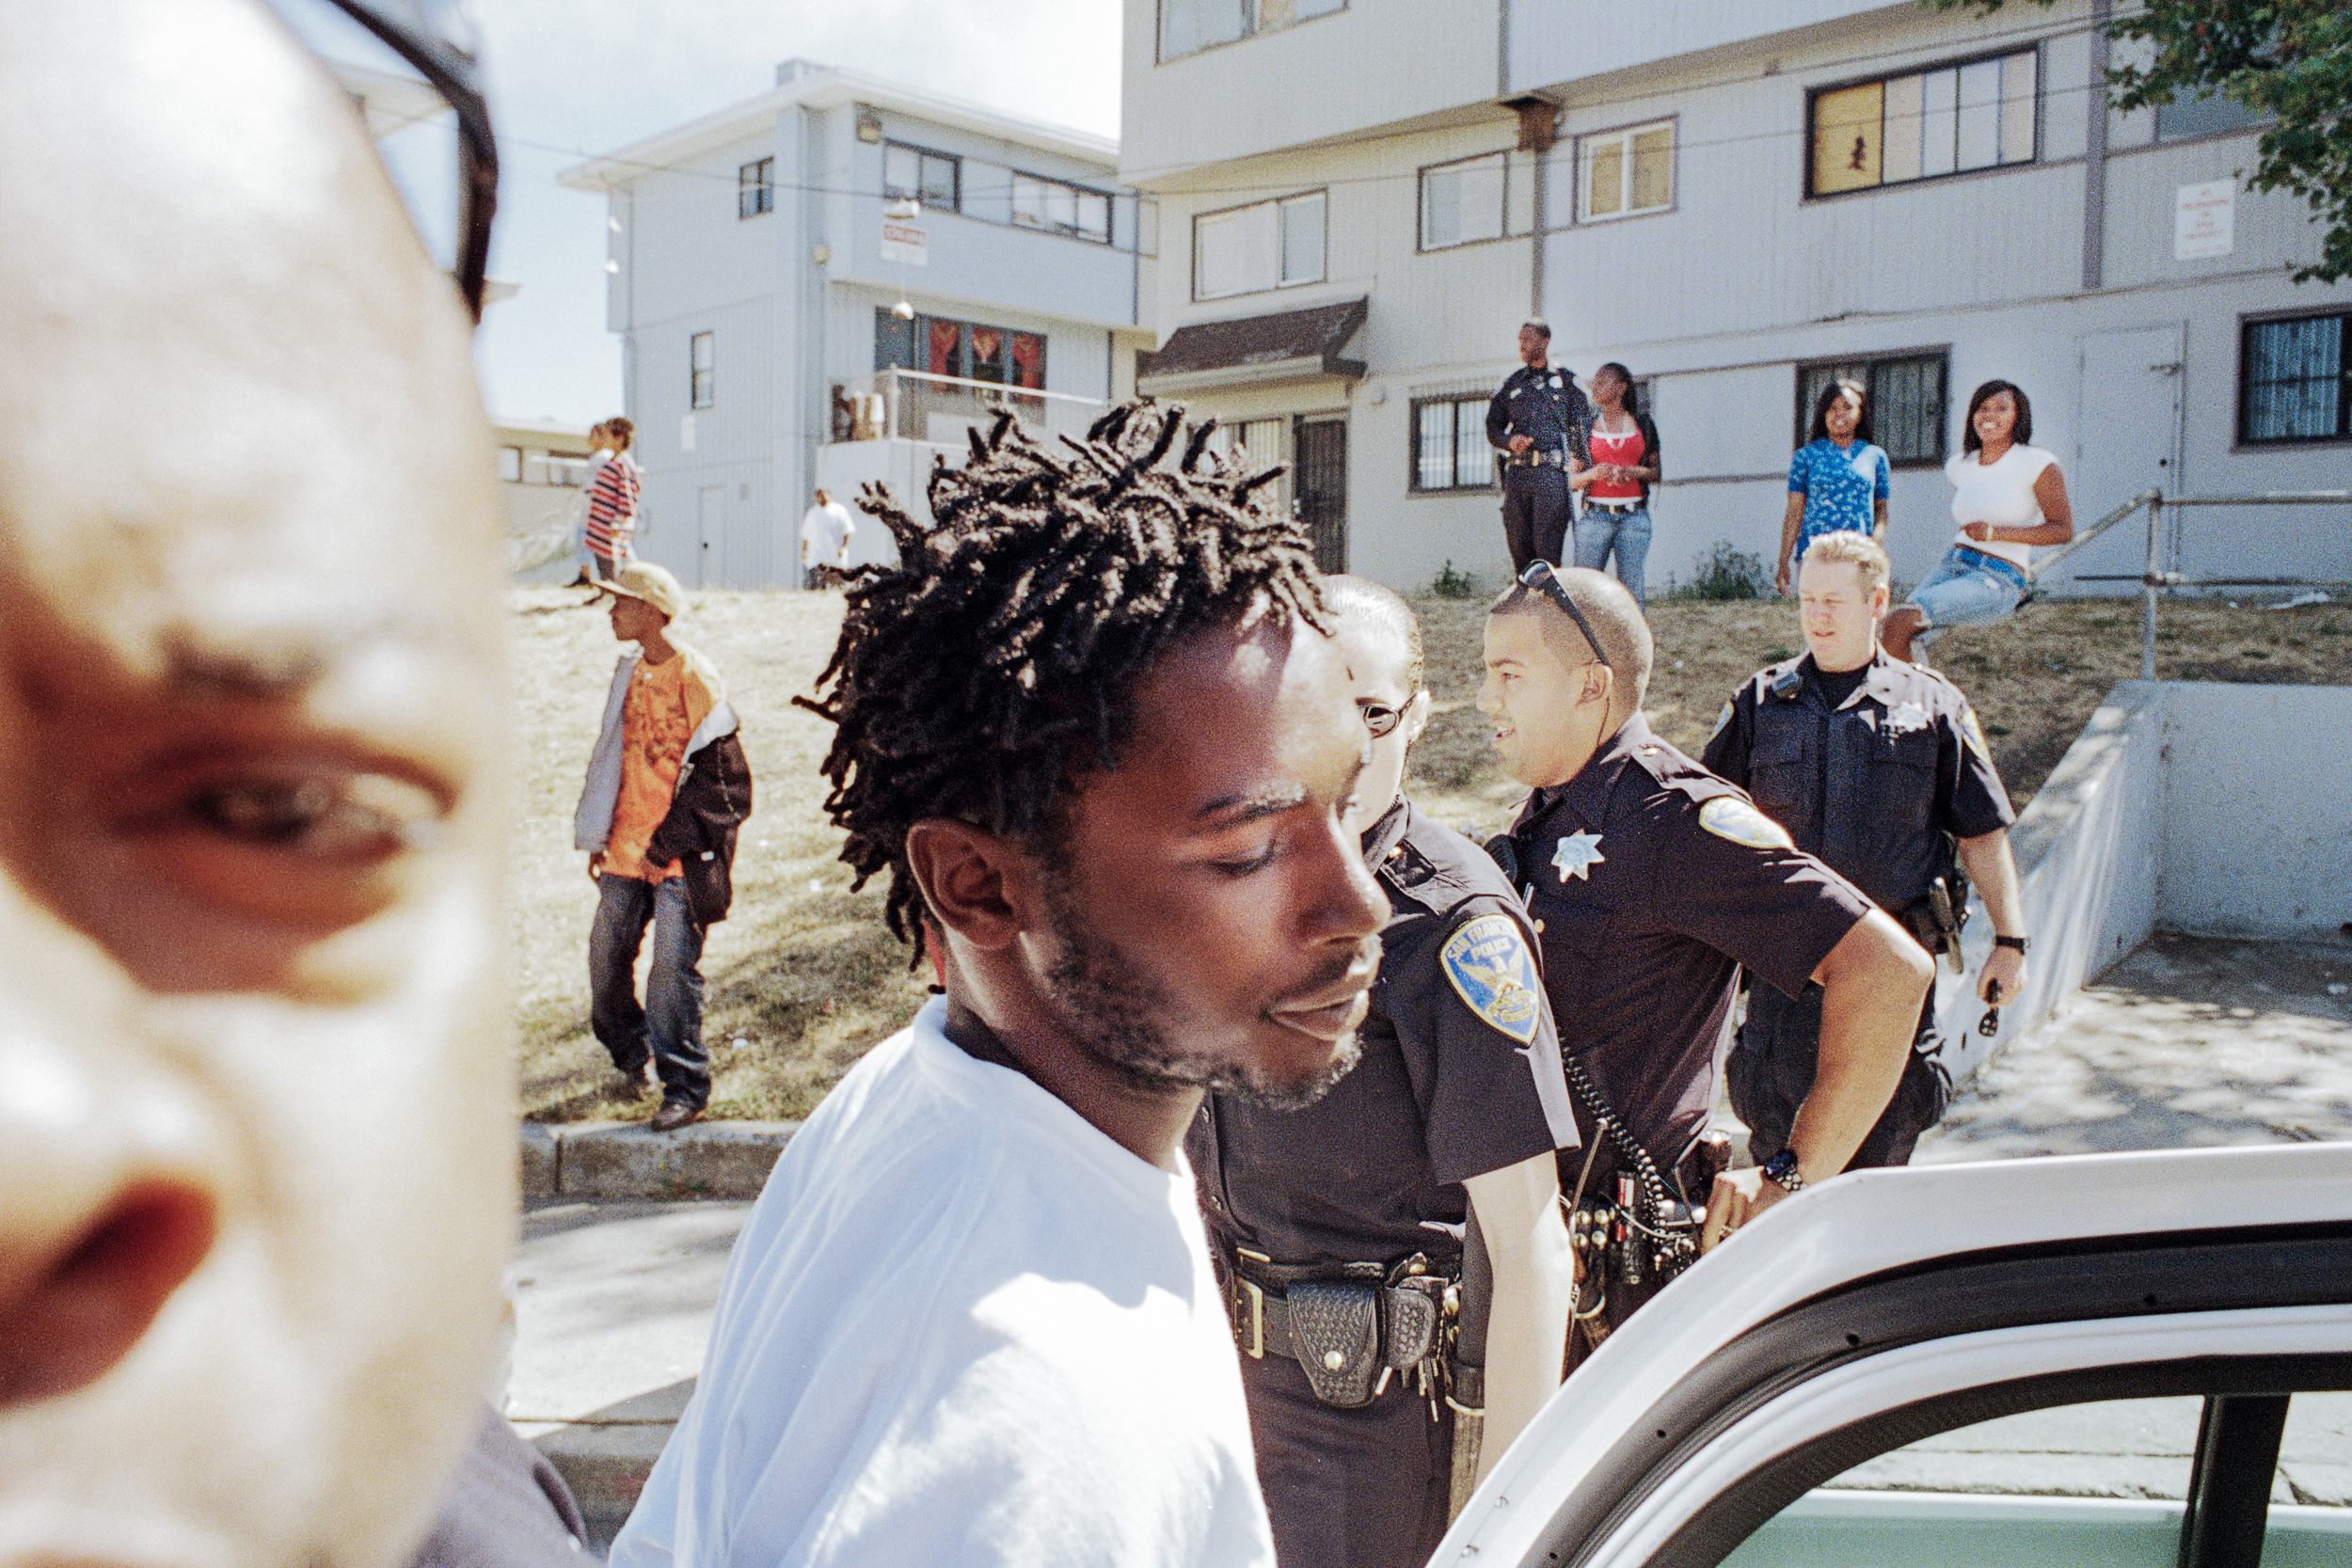 Jermaine is arrested in Hunters View, 2008.